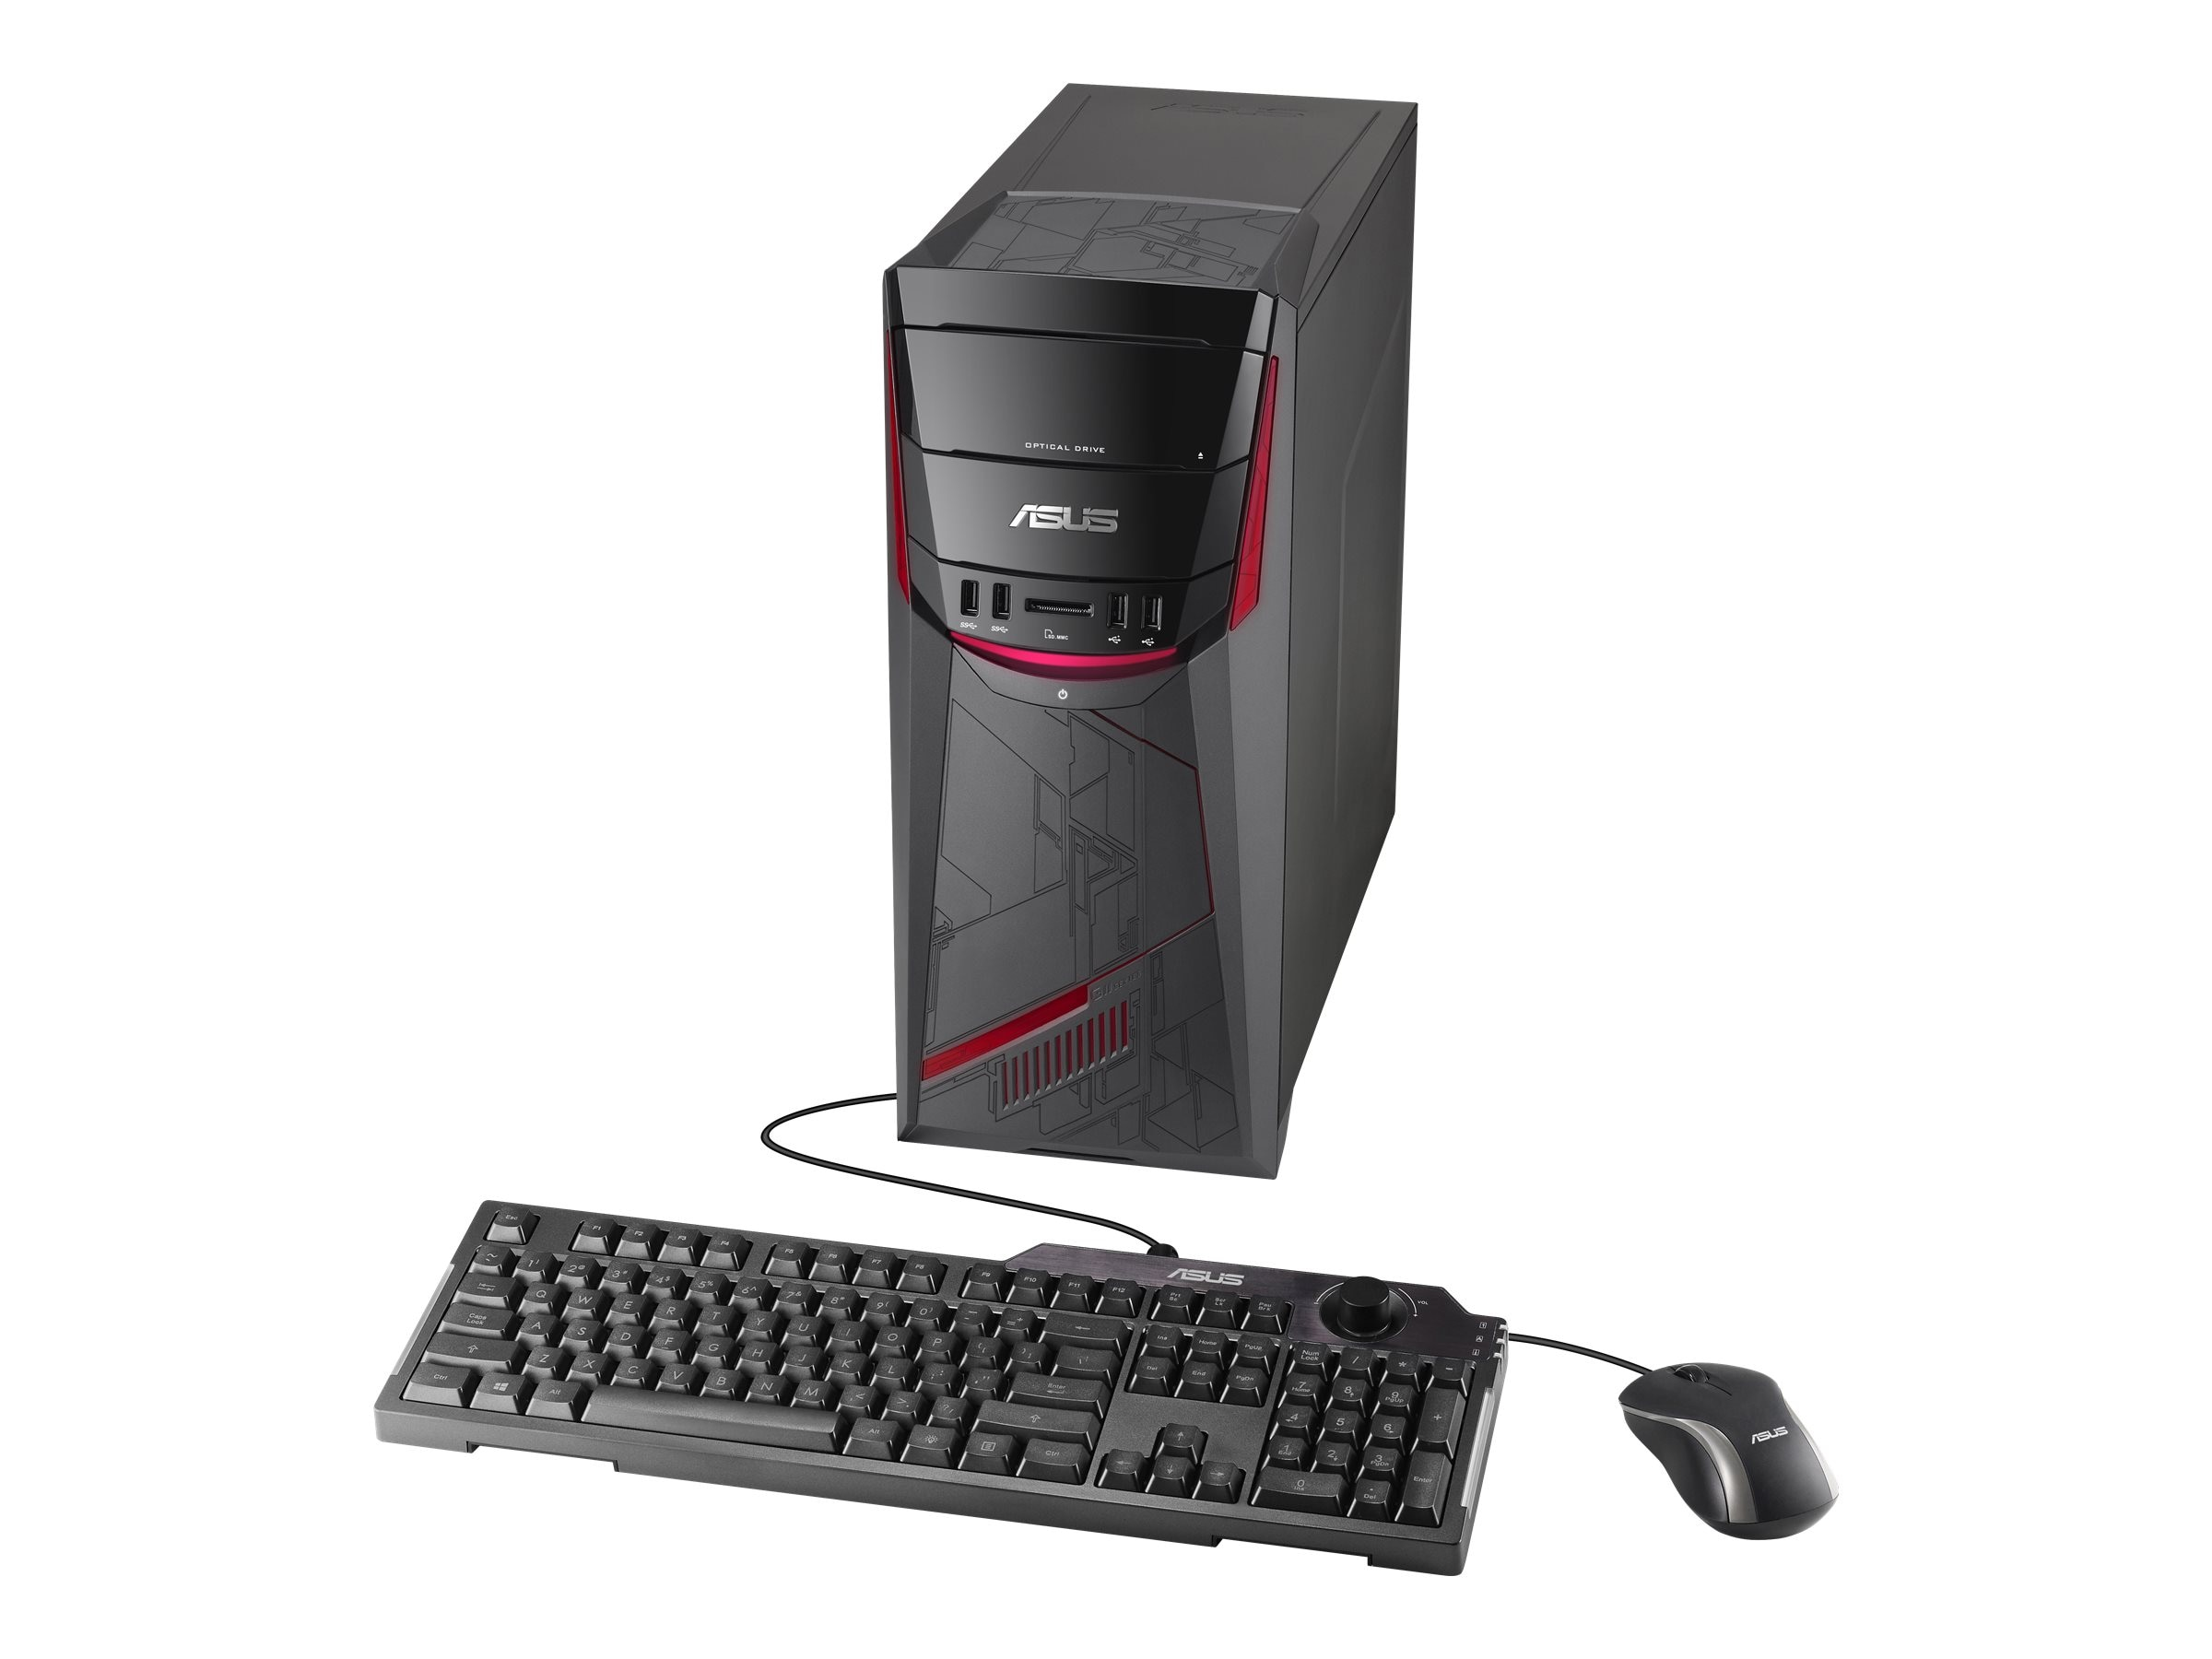 Asus G11CD-WS51 Desktop Core i5-6400 2.7GHz 8GB 1TB GTX970 DVD SM GbE ac BT W10HP64